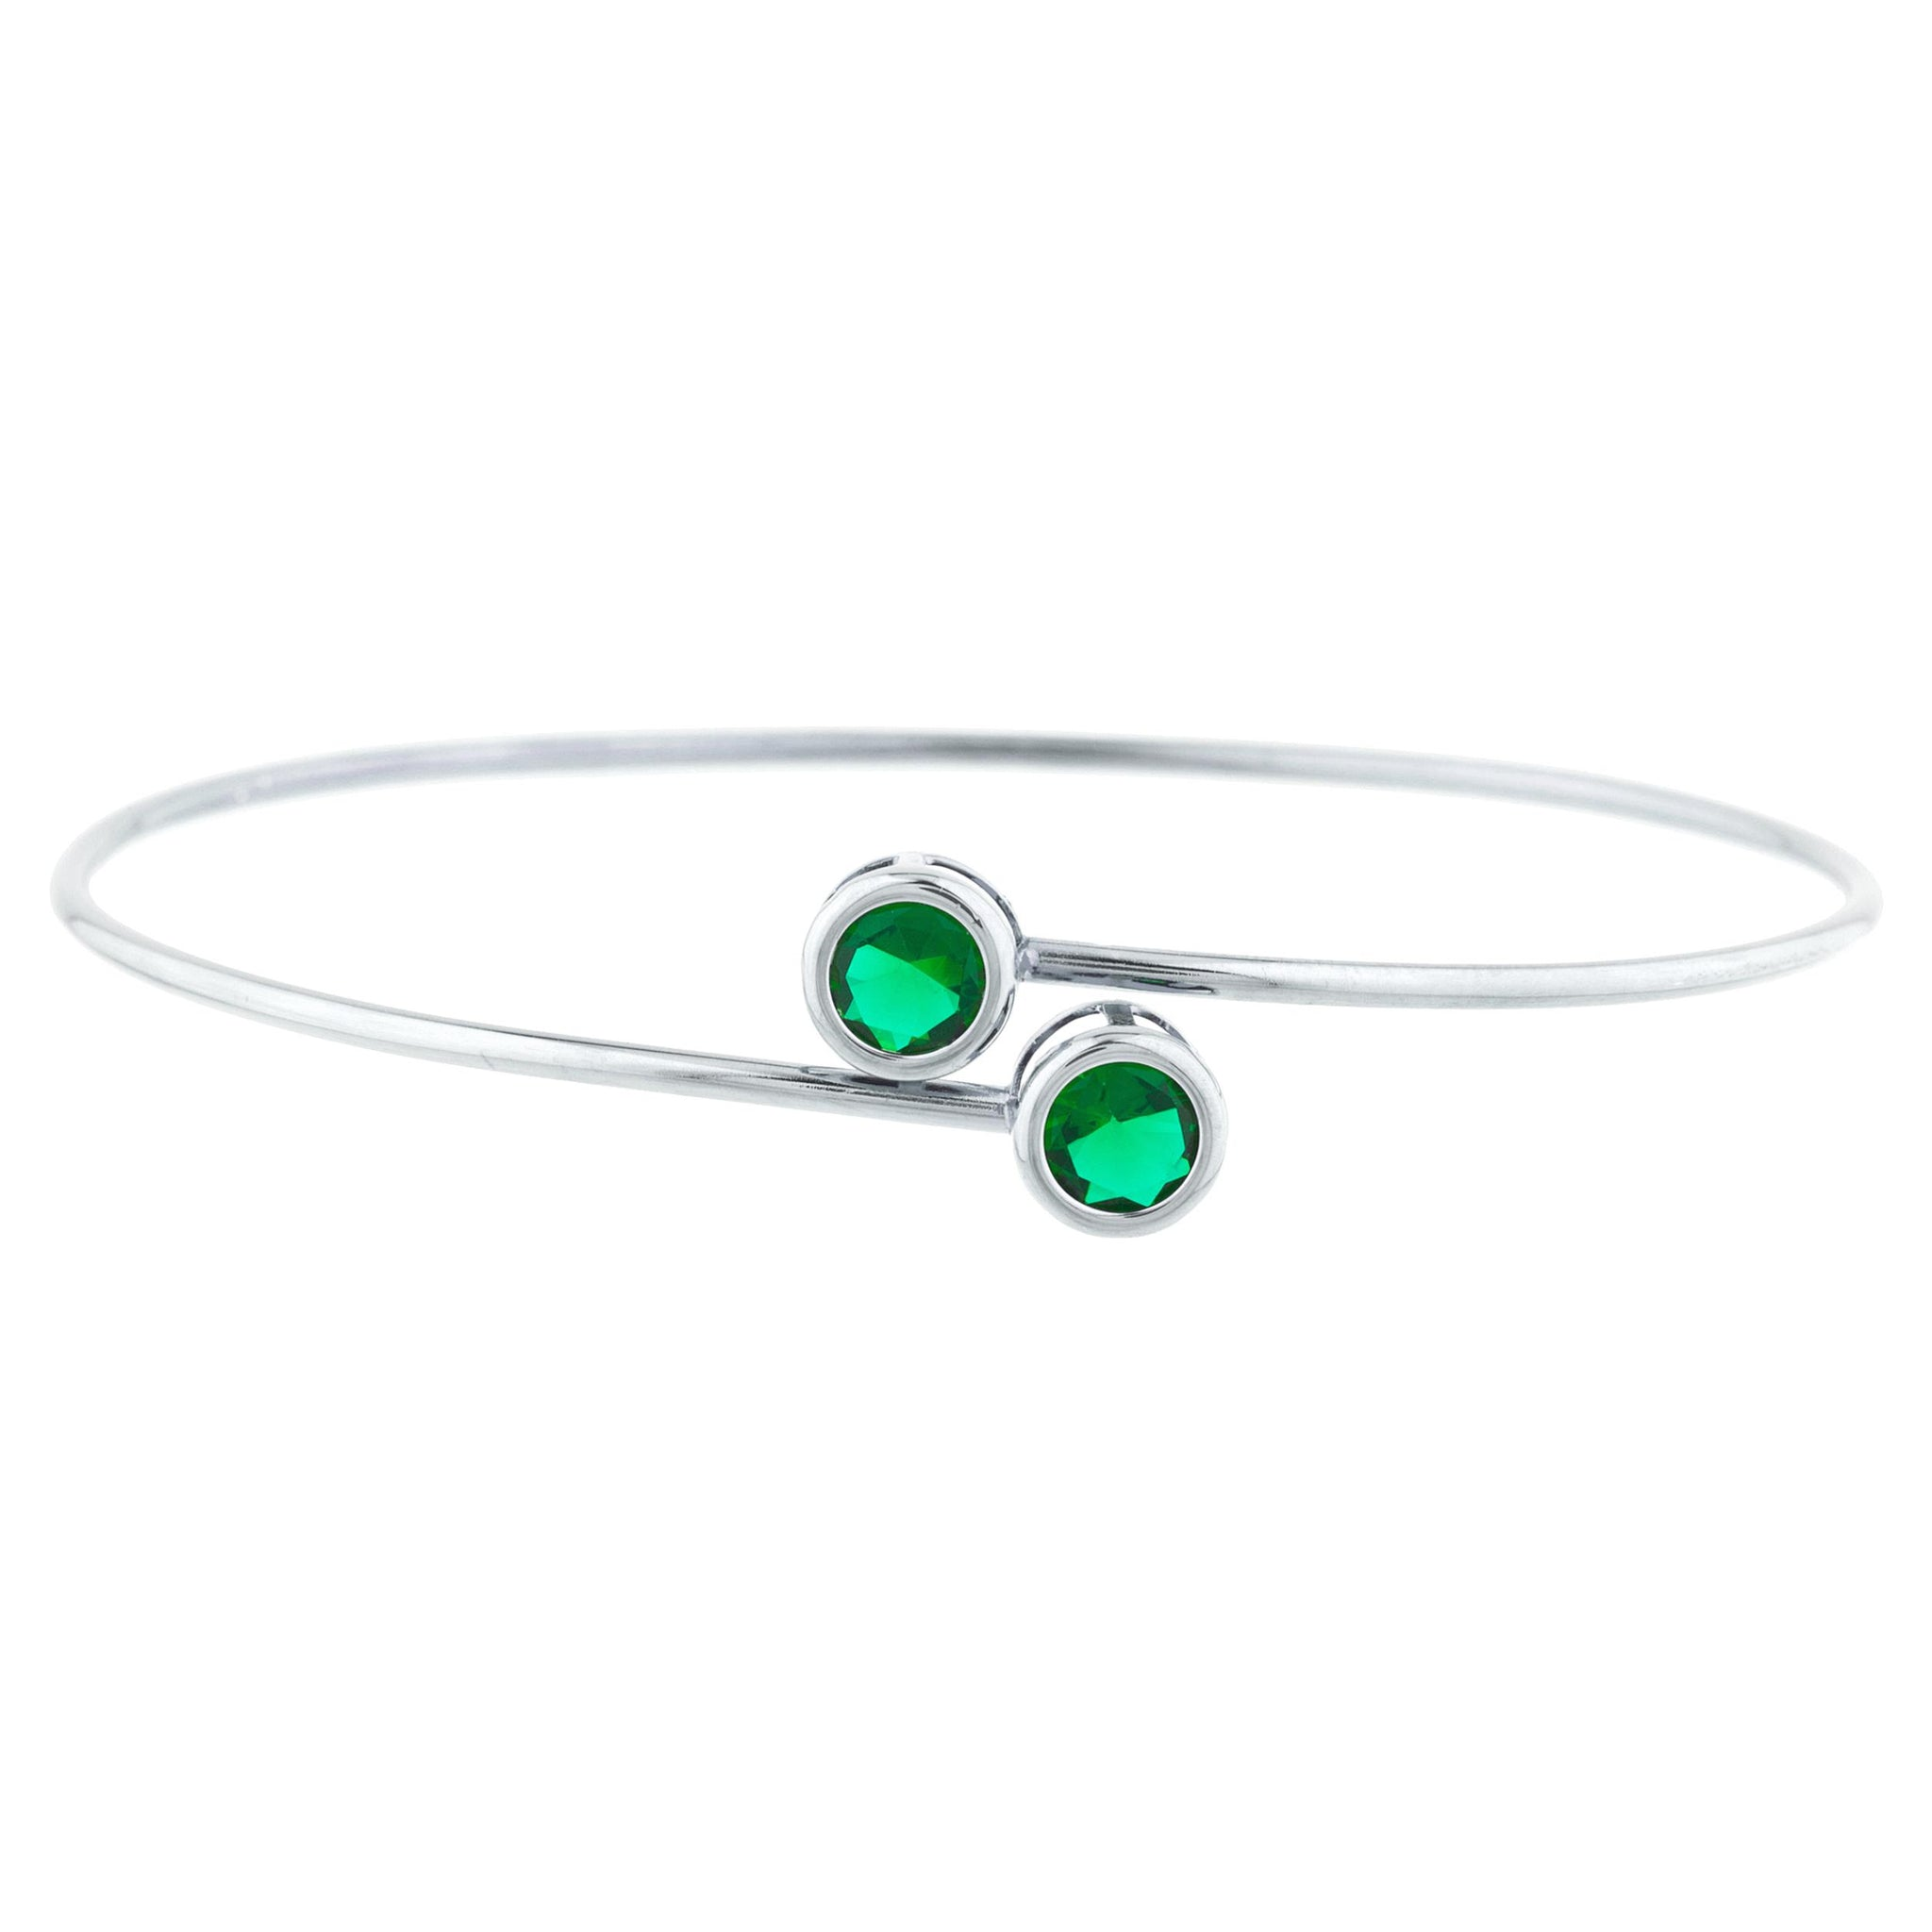 2 Ct Emerald Round Bezel Bangle Bracelet .925 Sterling Silver